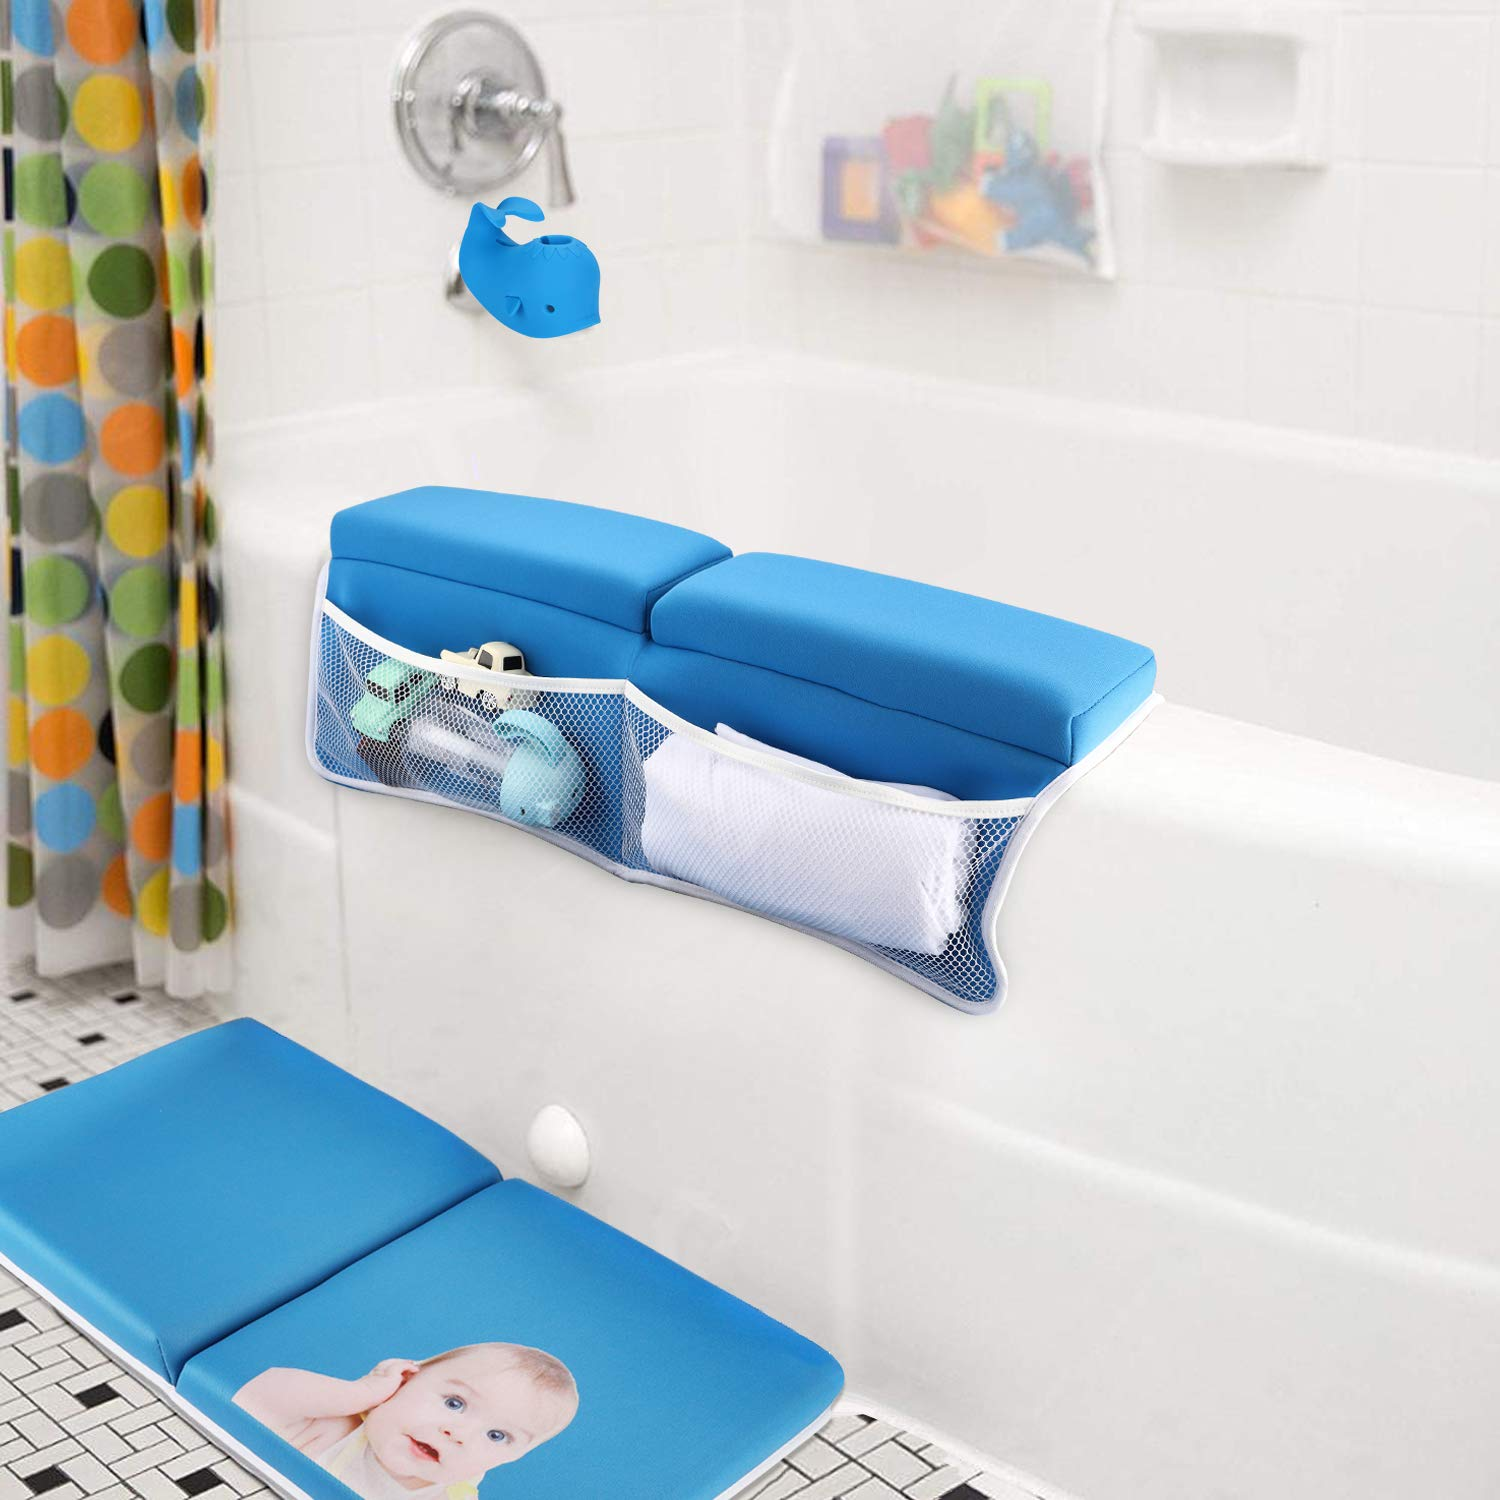 Bath Kneeler with Elbow Rest Pad Set with Bath-tub Spout Cover, Hoohome Baby Bath Set,X-Long, Thick, Knee Cushioned Bathtub Support, Non-Slip Bottom, 4 Caddy Pockets Support by Hoohome